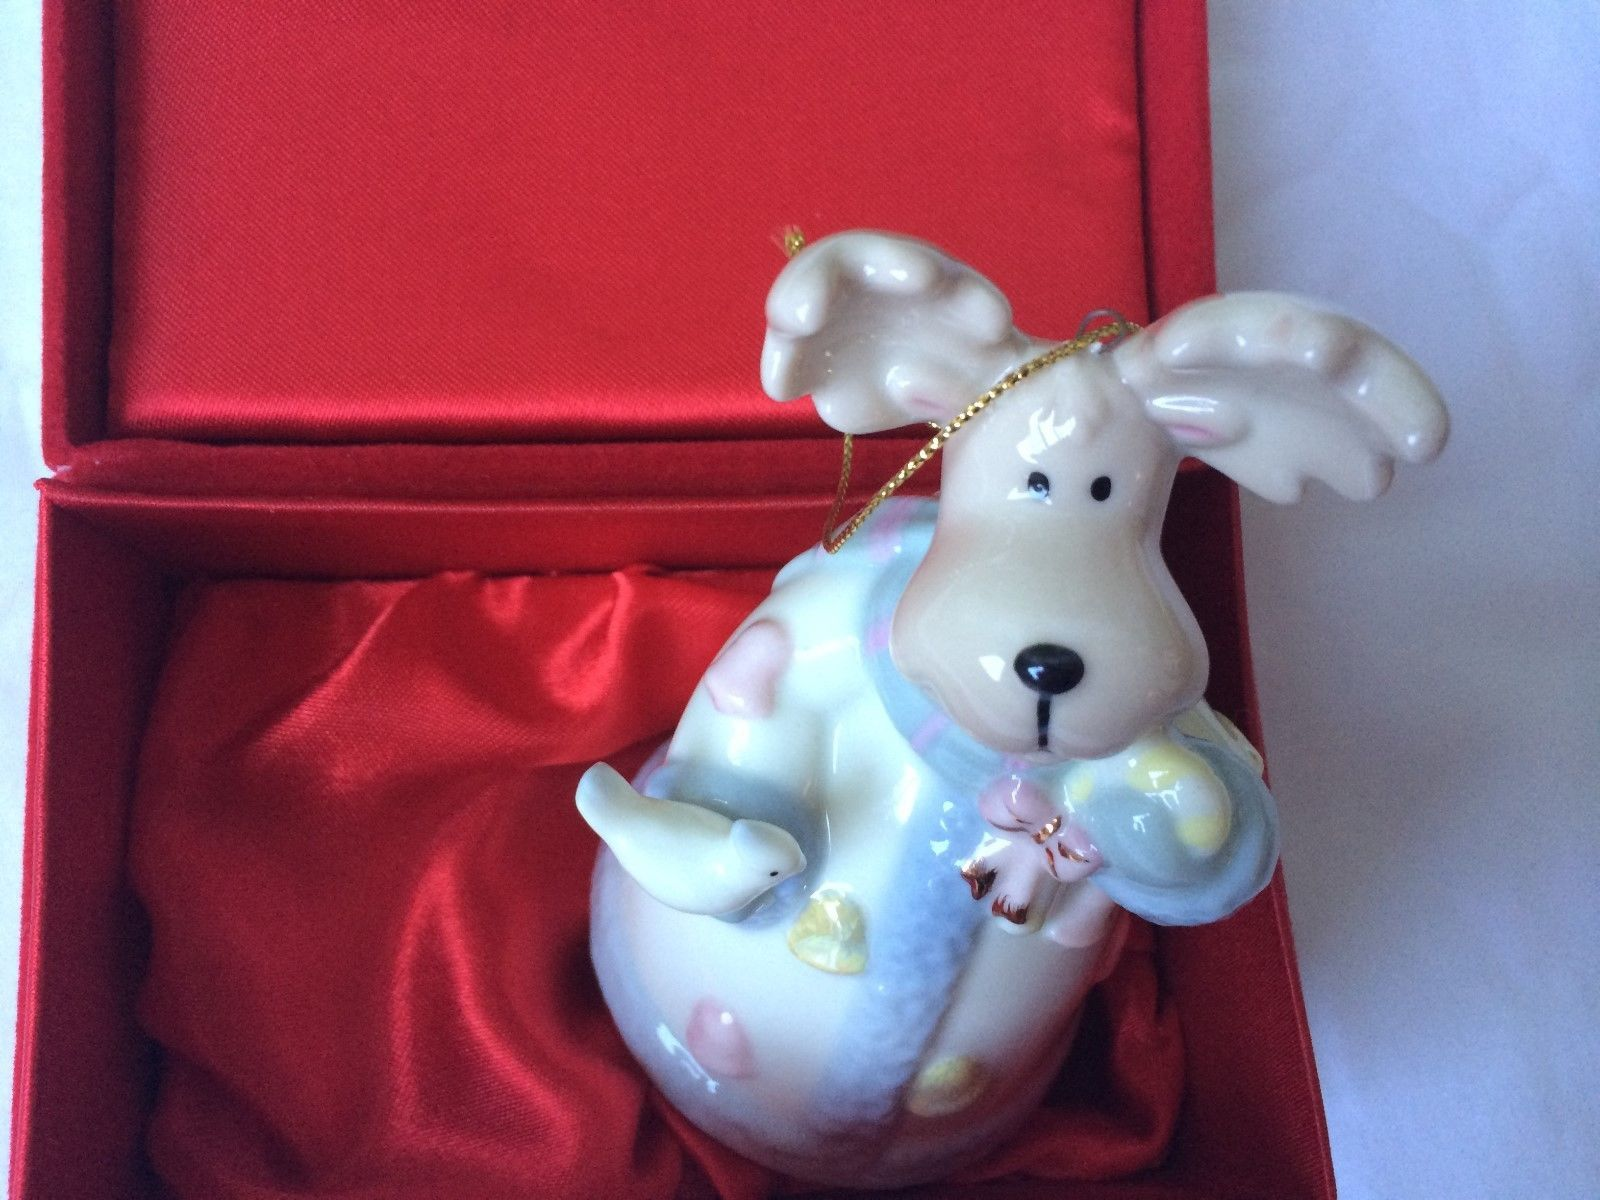 Primary image for Formalities by Baum Brothers Christmas Ornament Moose Bell Ceramic In Red Velvet